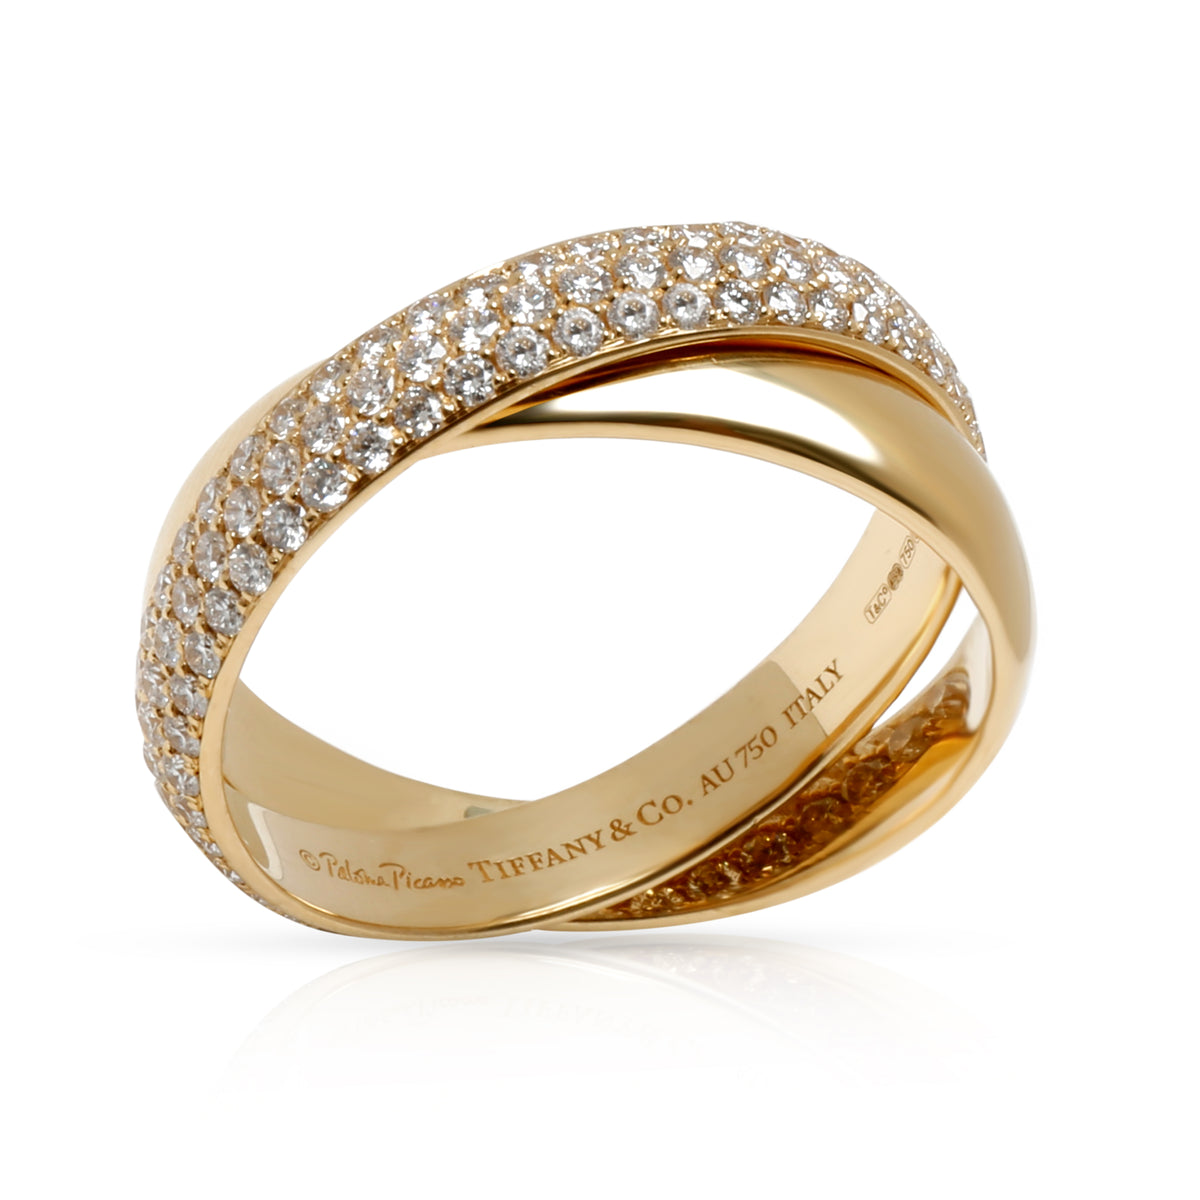 Tiffany & Co. Paloma Picasso Melody Diamond Ring in 18K Yellow Gold 0.85 CTW